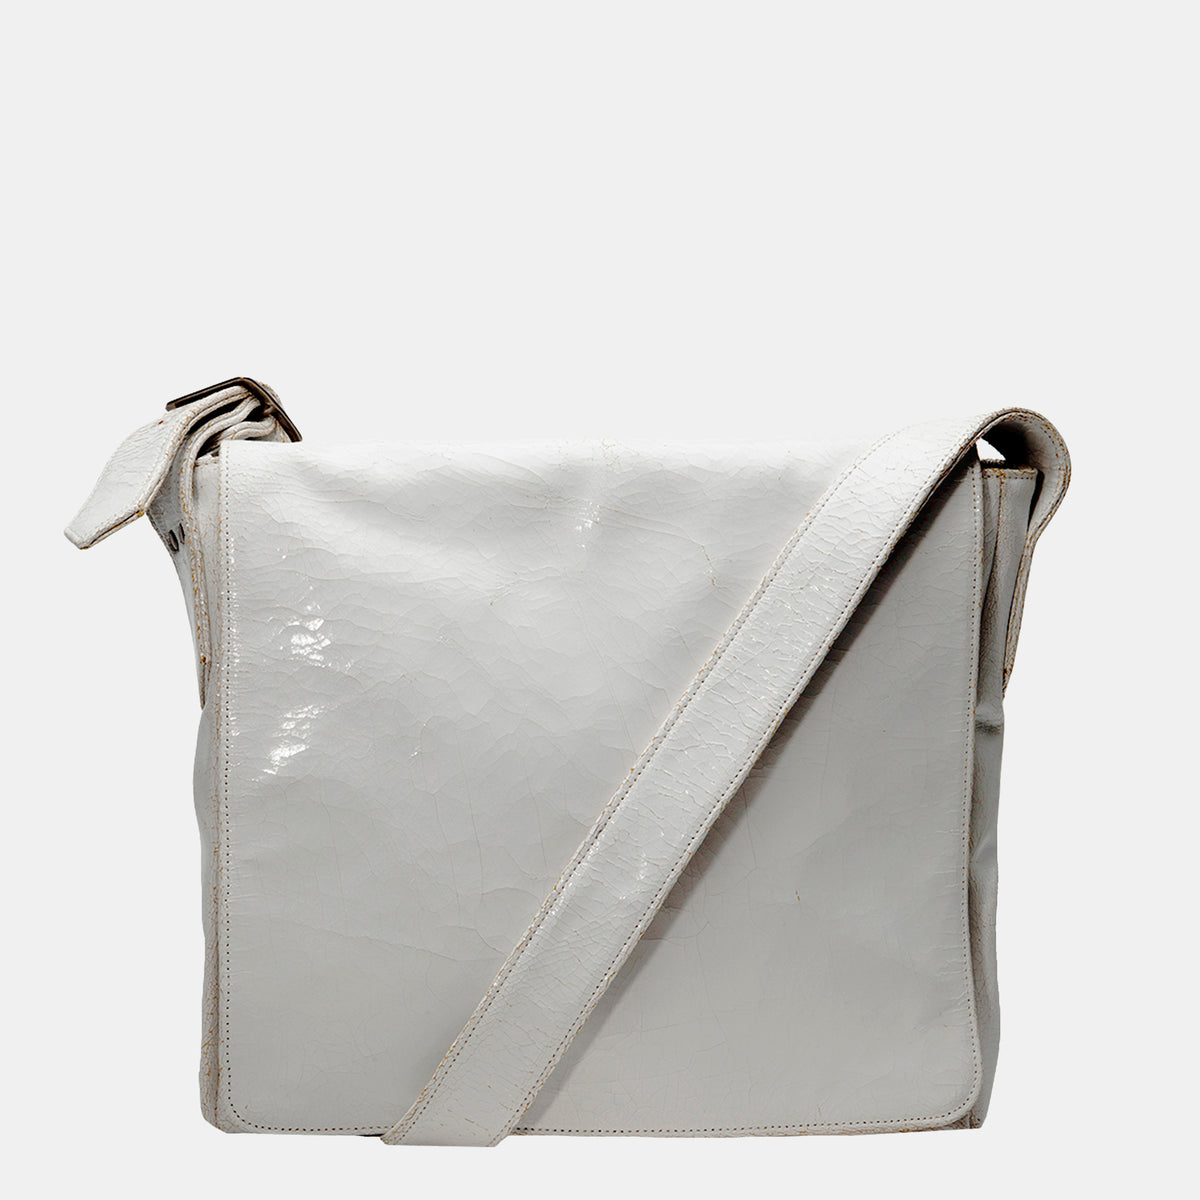 Jaxx Messenger Bag